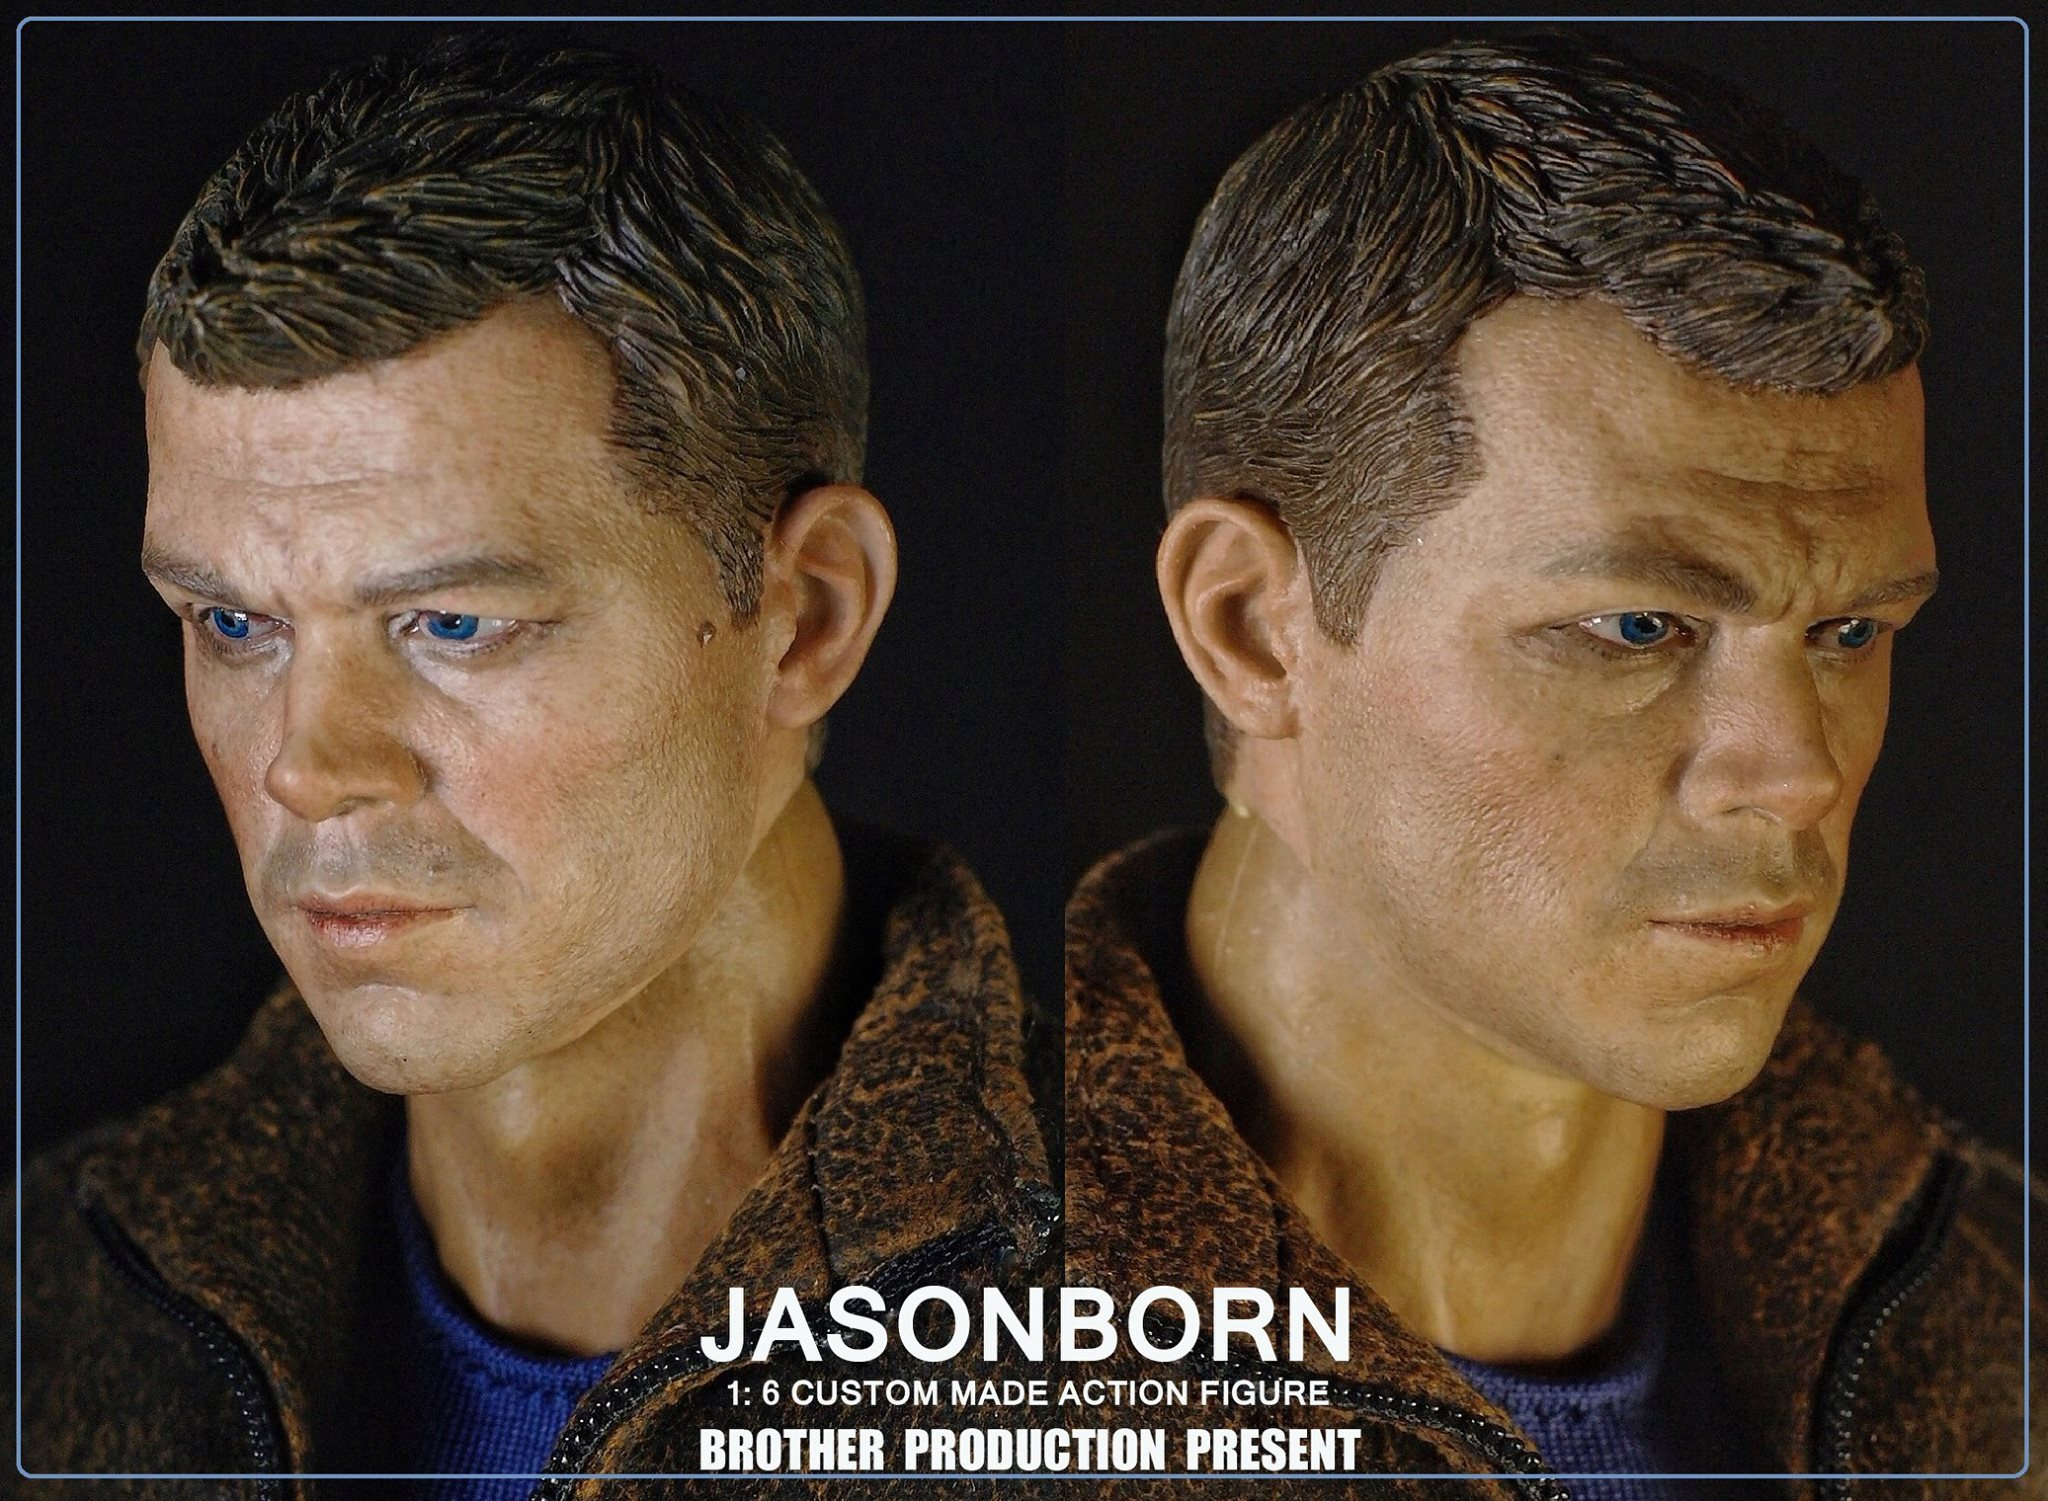 JASON BORN - JASON BOURNE Ml6l